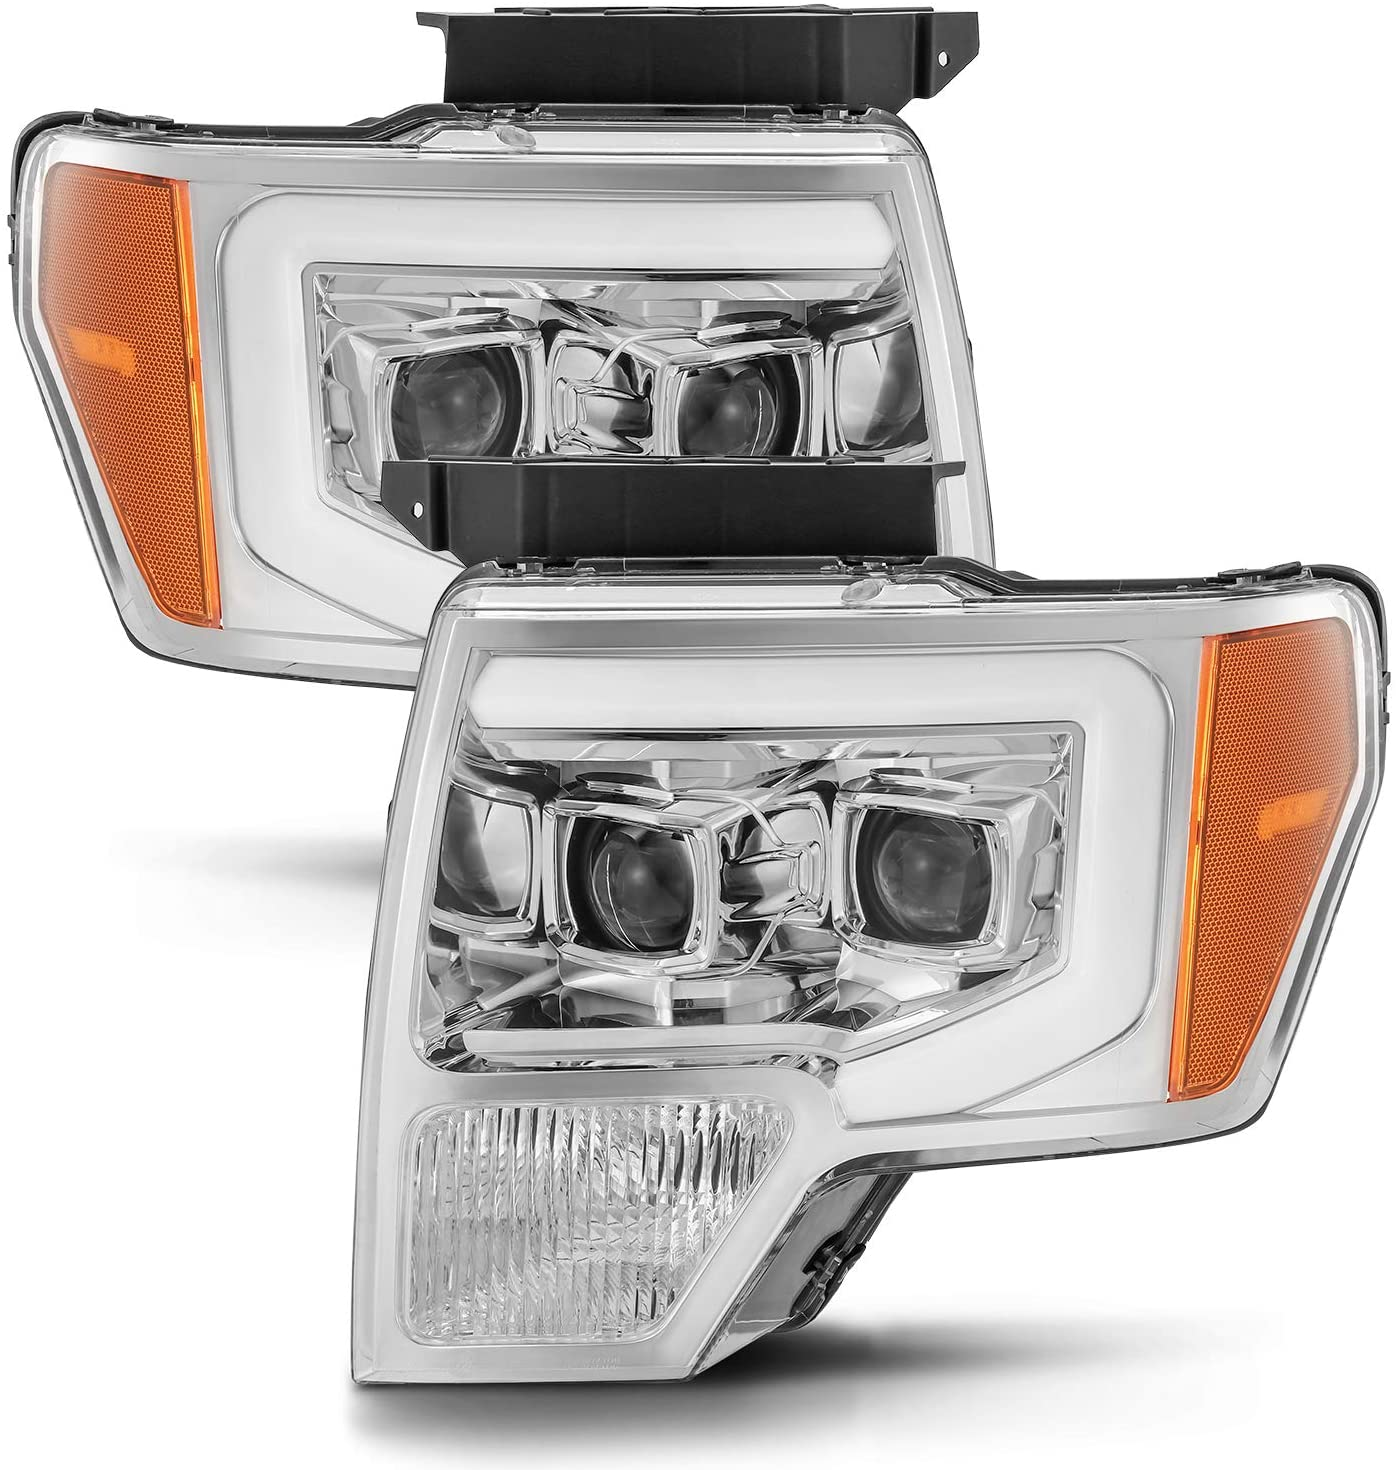 AlphaRex Base Model Chrome For 09-14 Ford F150 DRL LED Tube Dual Projector Headlights